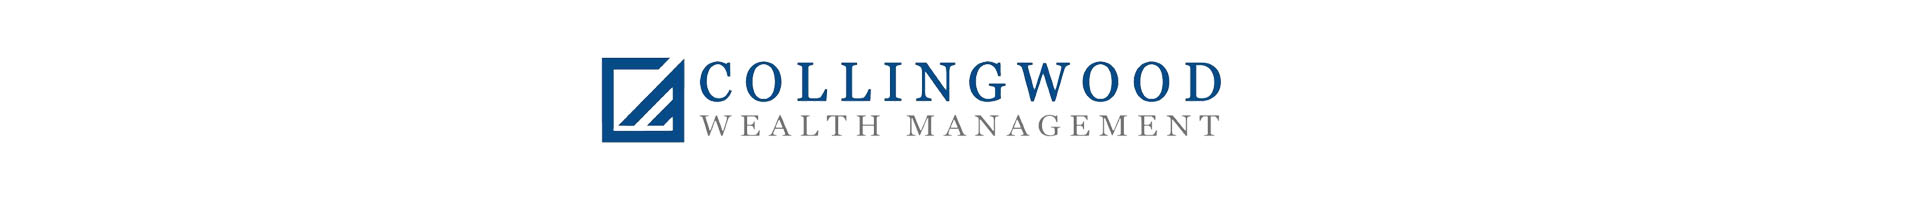 Collingwood Wealth Management